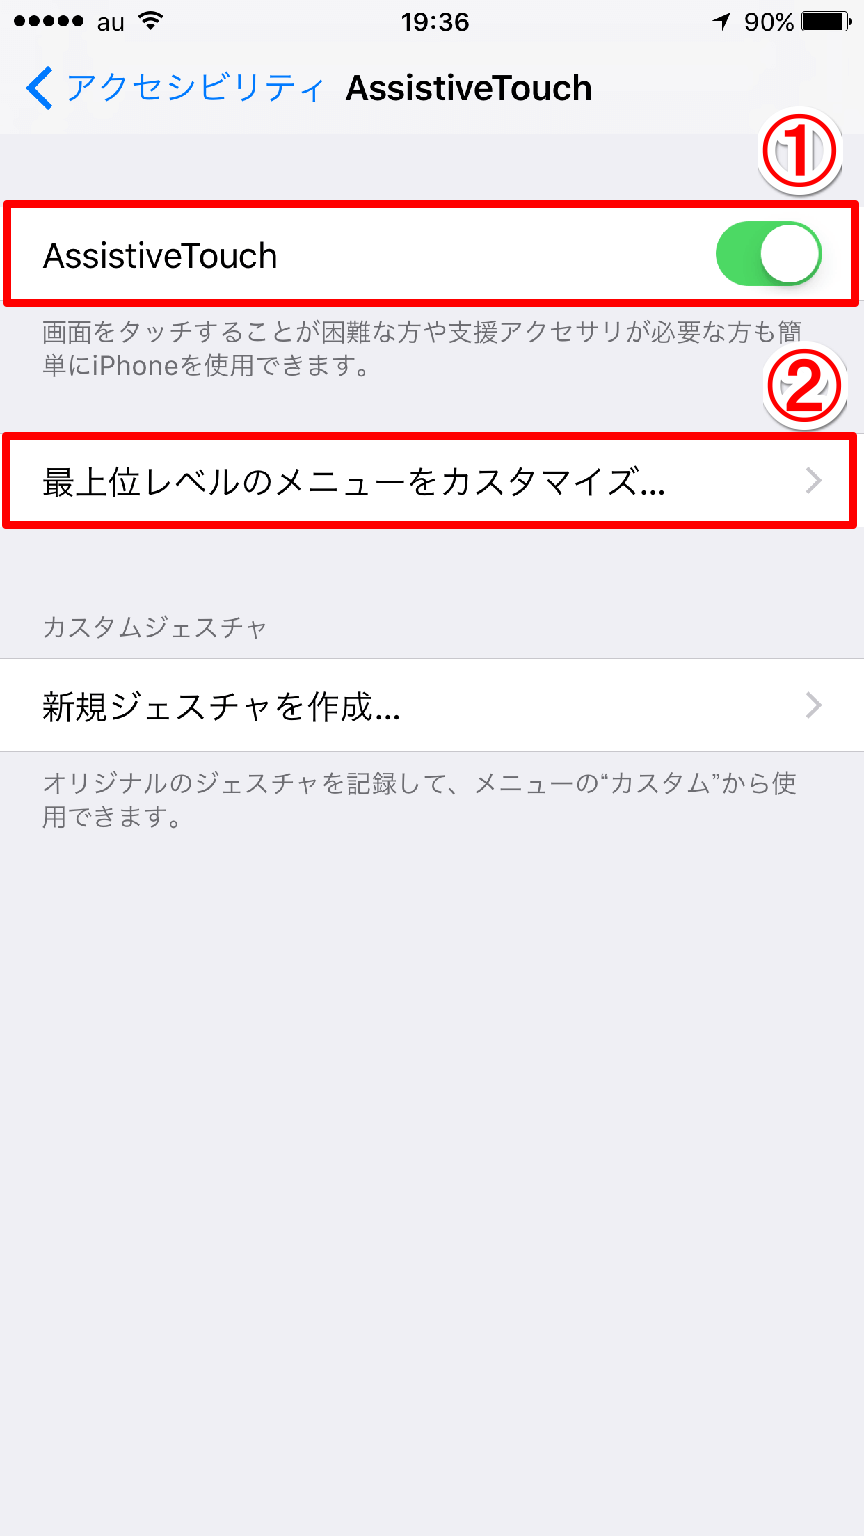 iPhoneの[AssistiveTouch]画面